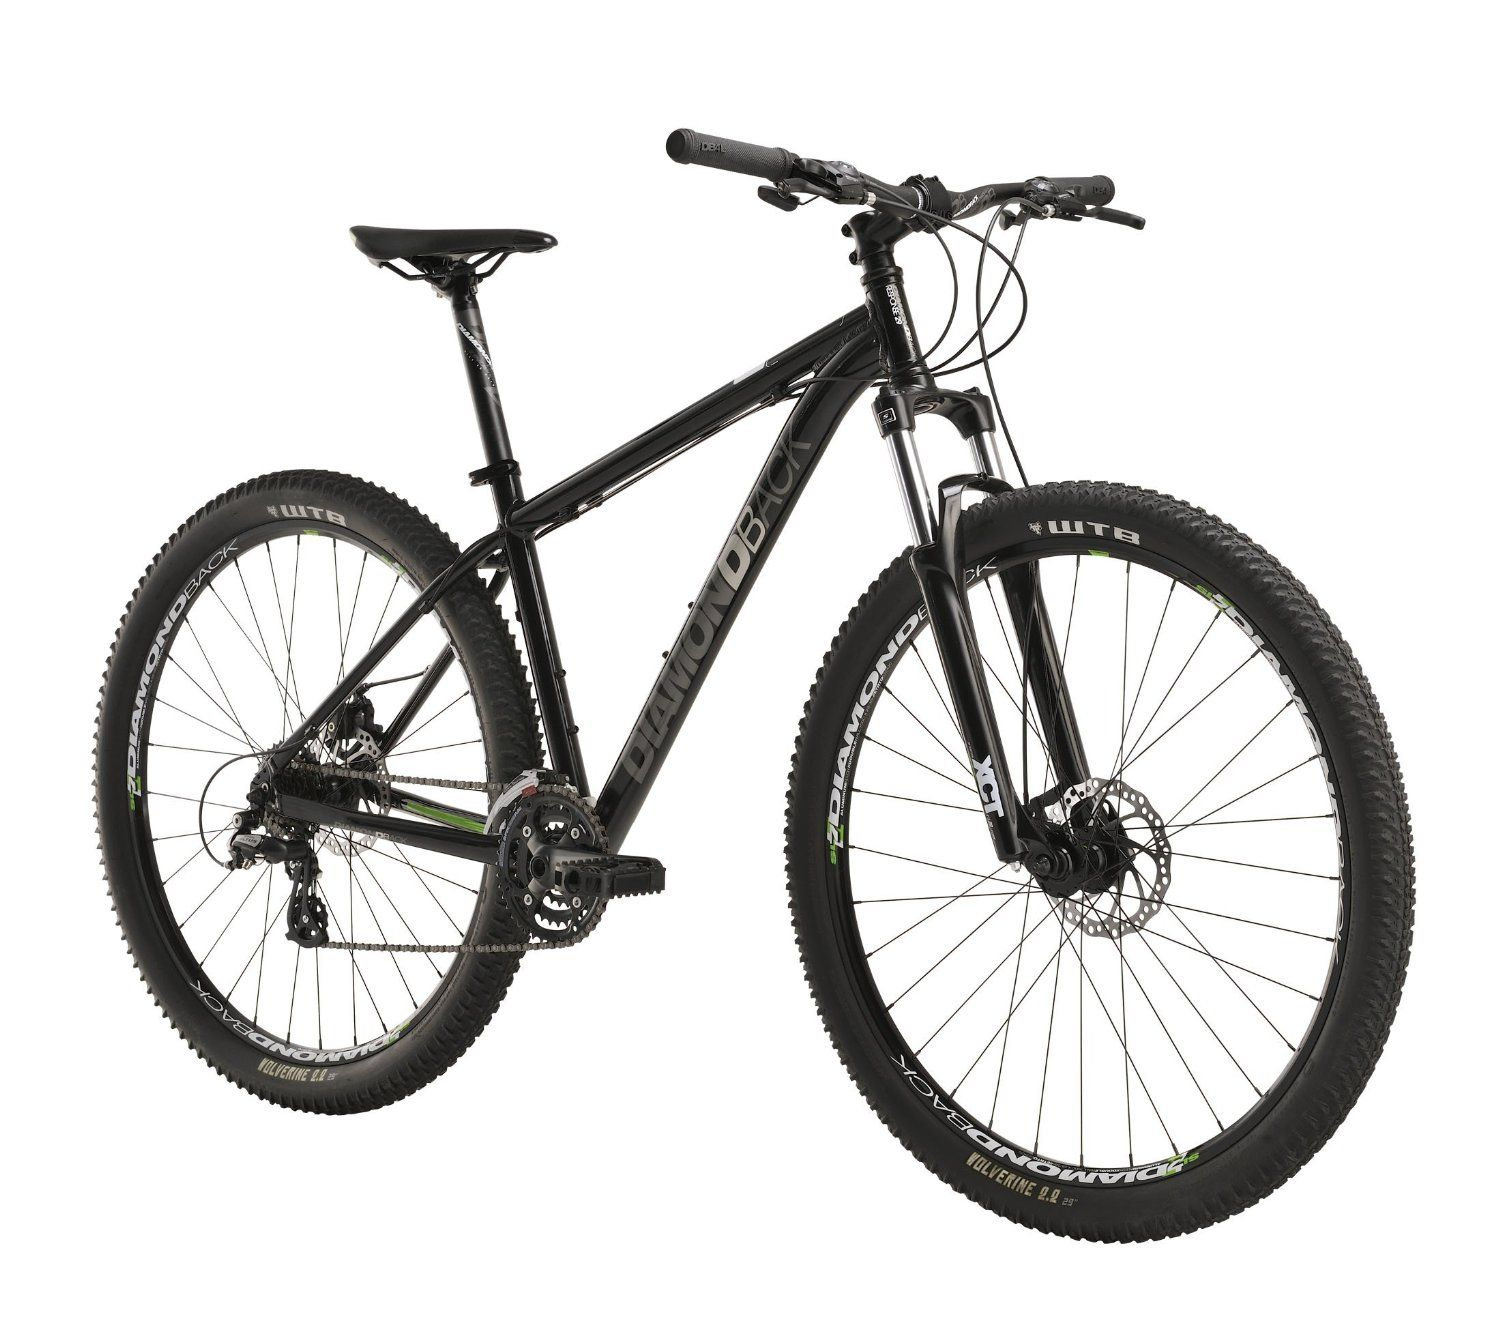 Top 5 Best Entry Level Mountain Bikes For Beginners On A Budget Mountain Biking Gear Mountain Bike Reviews Cross Country Mountain Bike